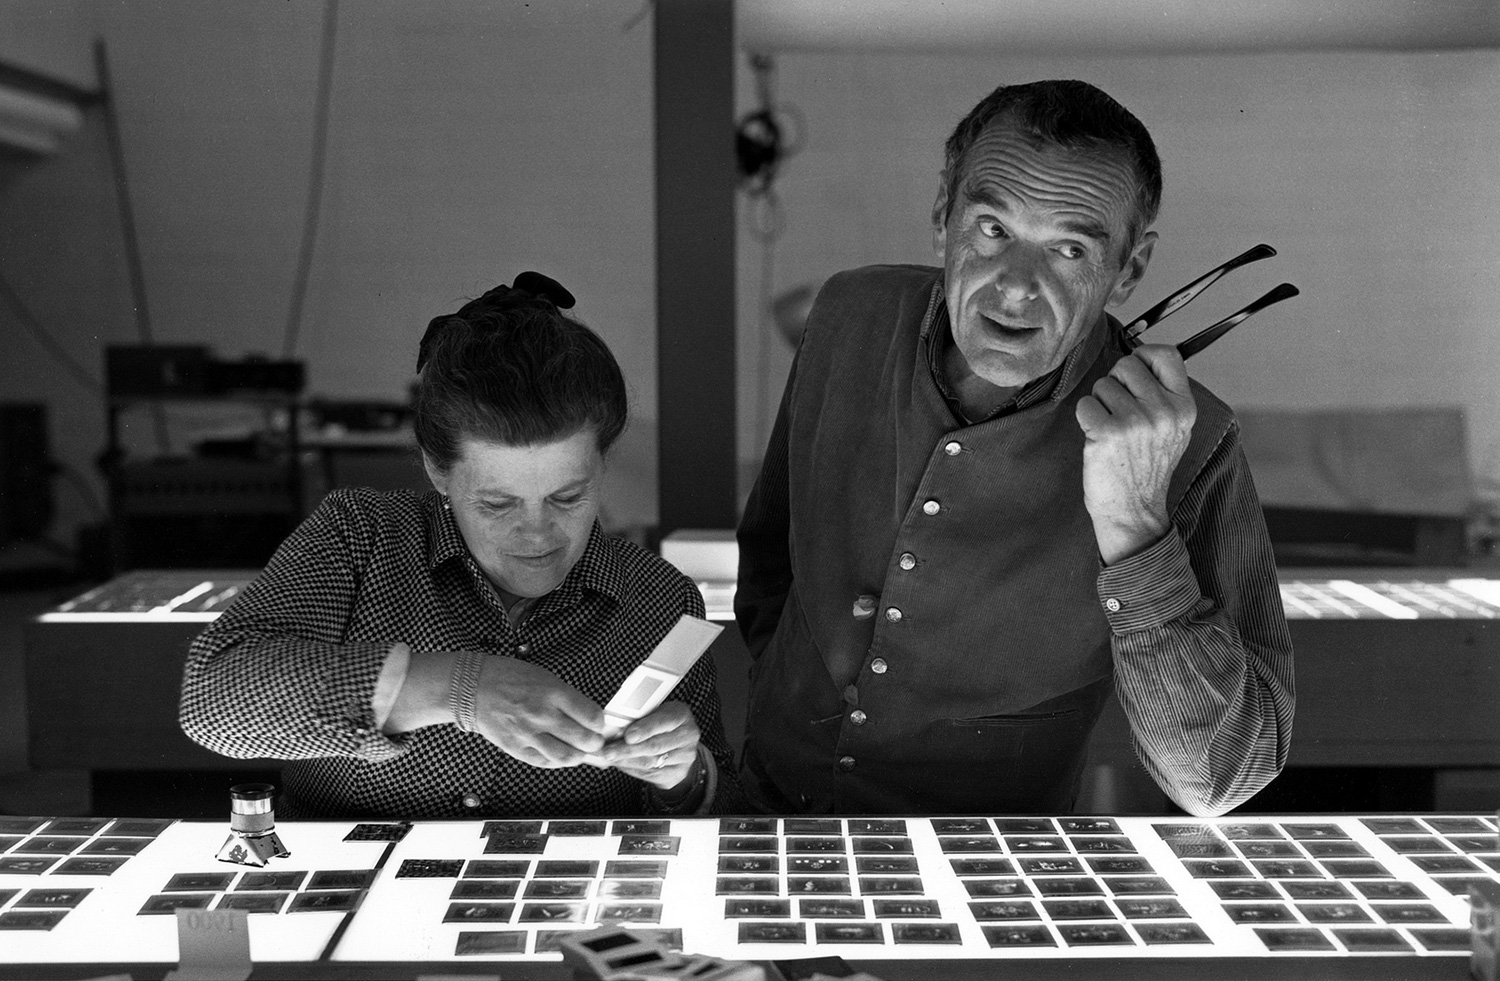 the eames translated their process of discovery into